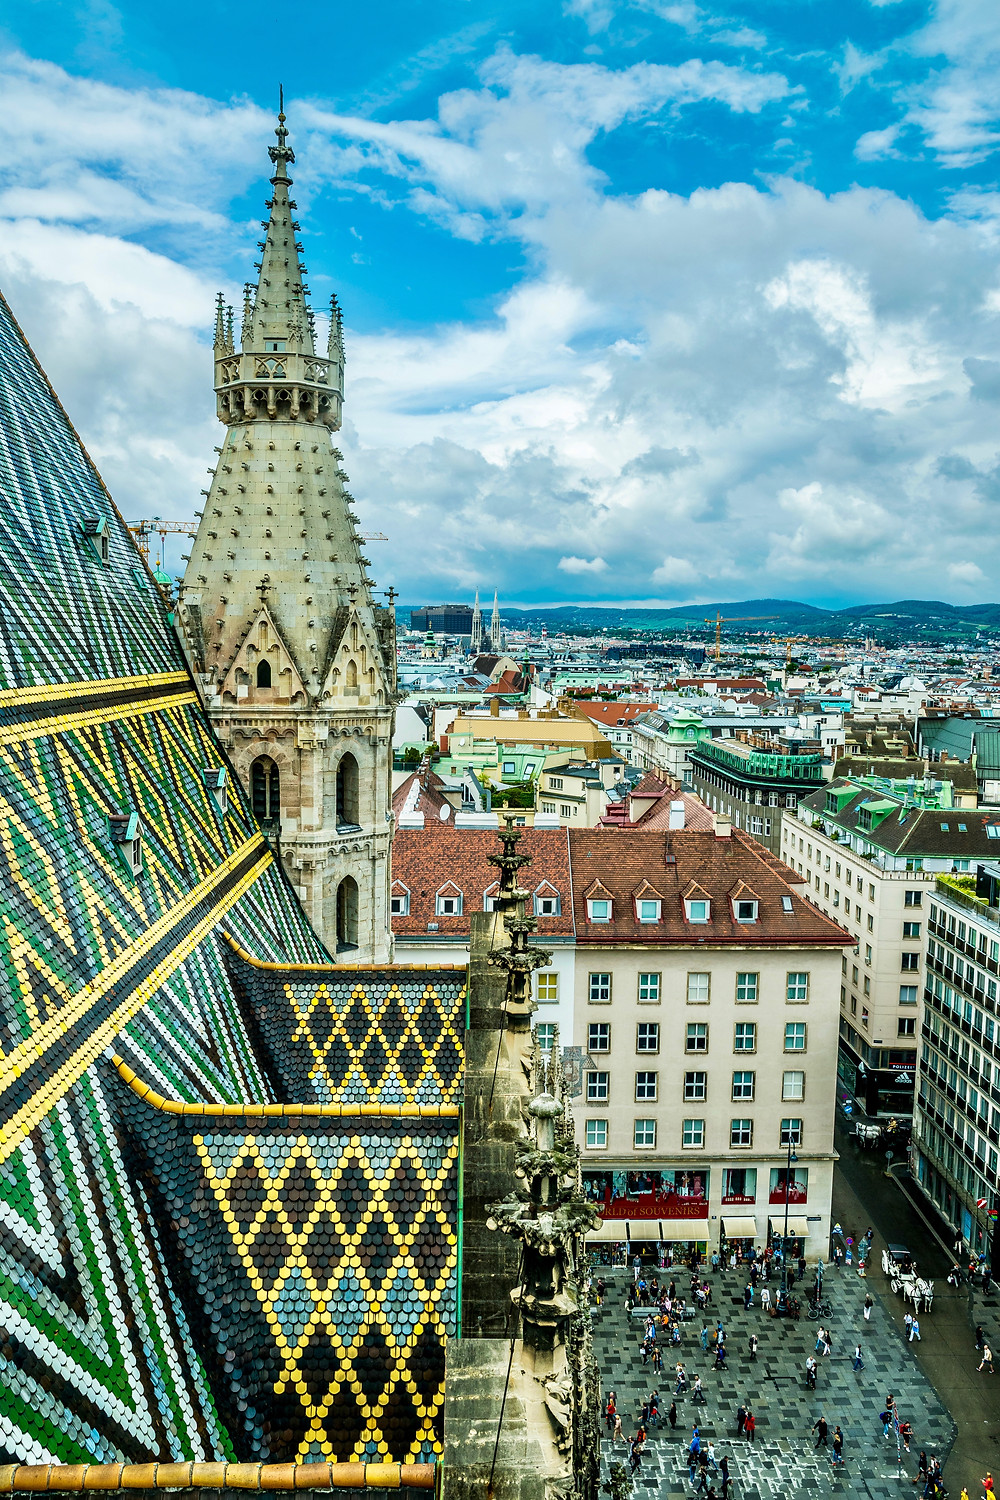 close up of St. Stephen's tiled roof from the tower